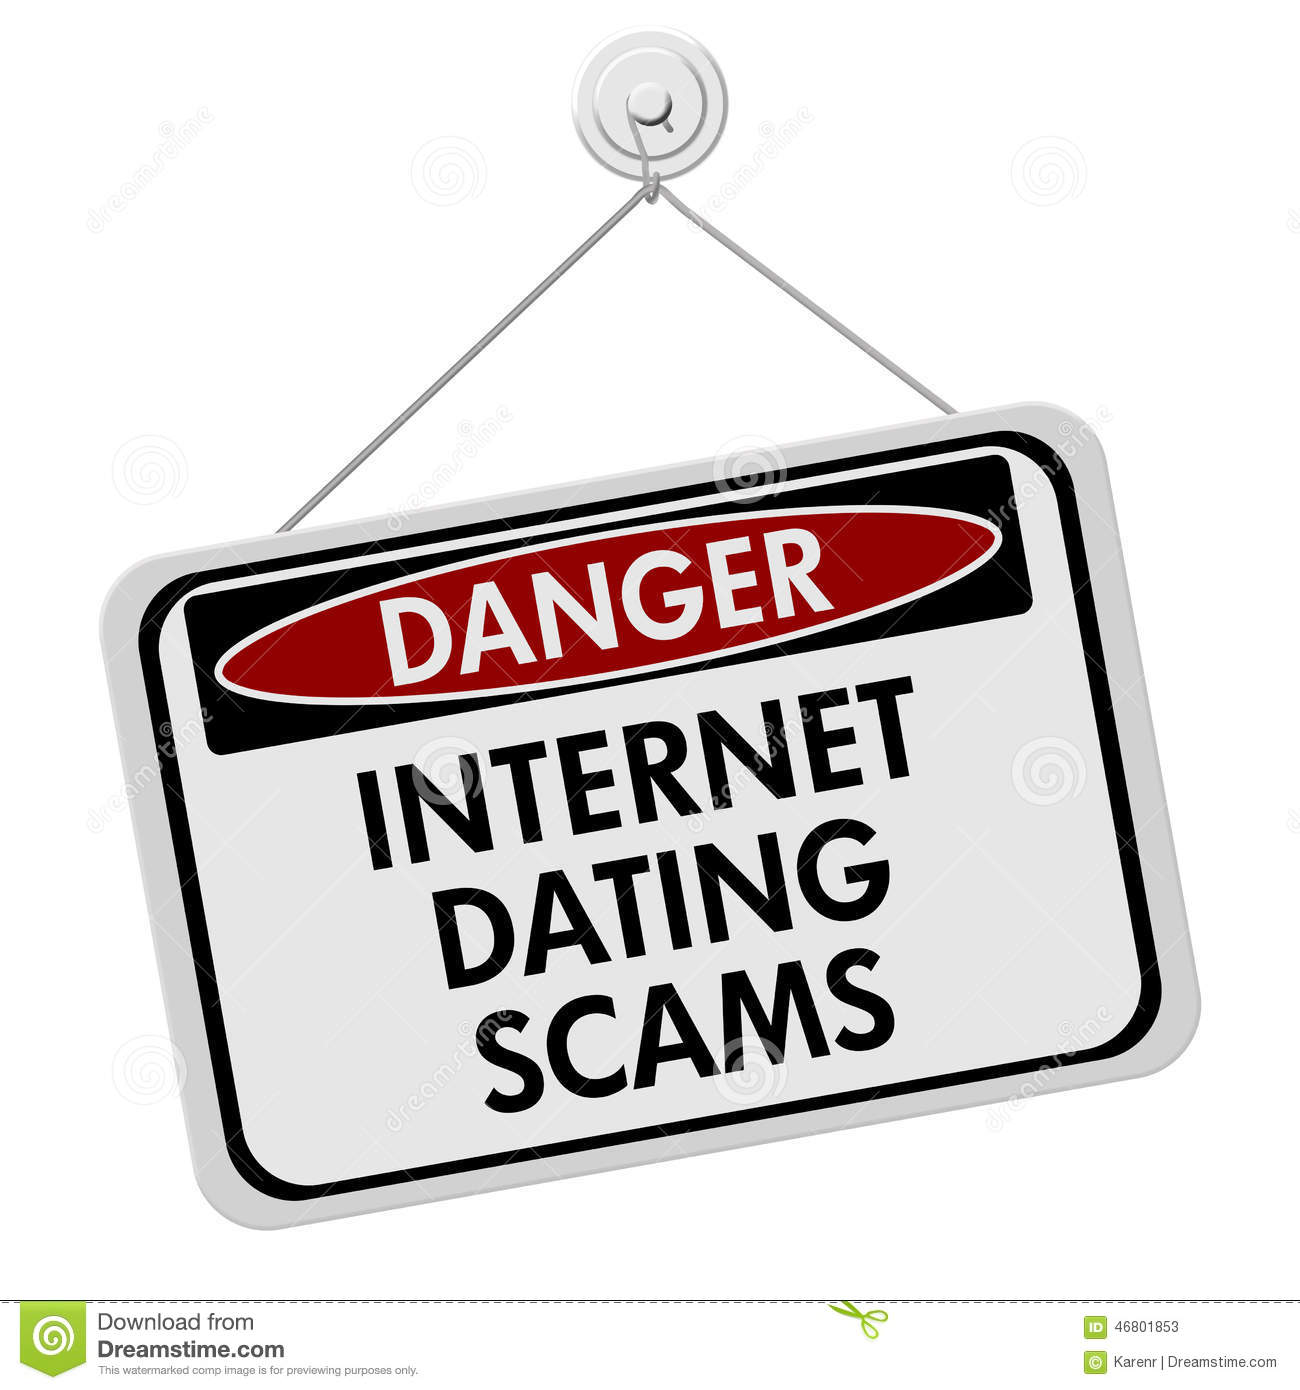 Online dating fraud stories